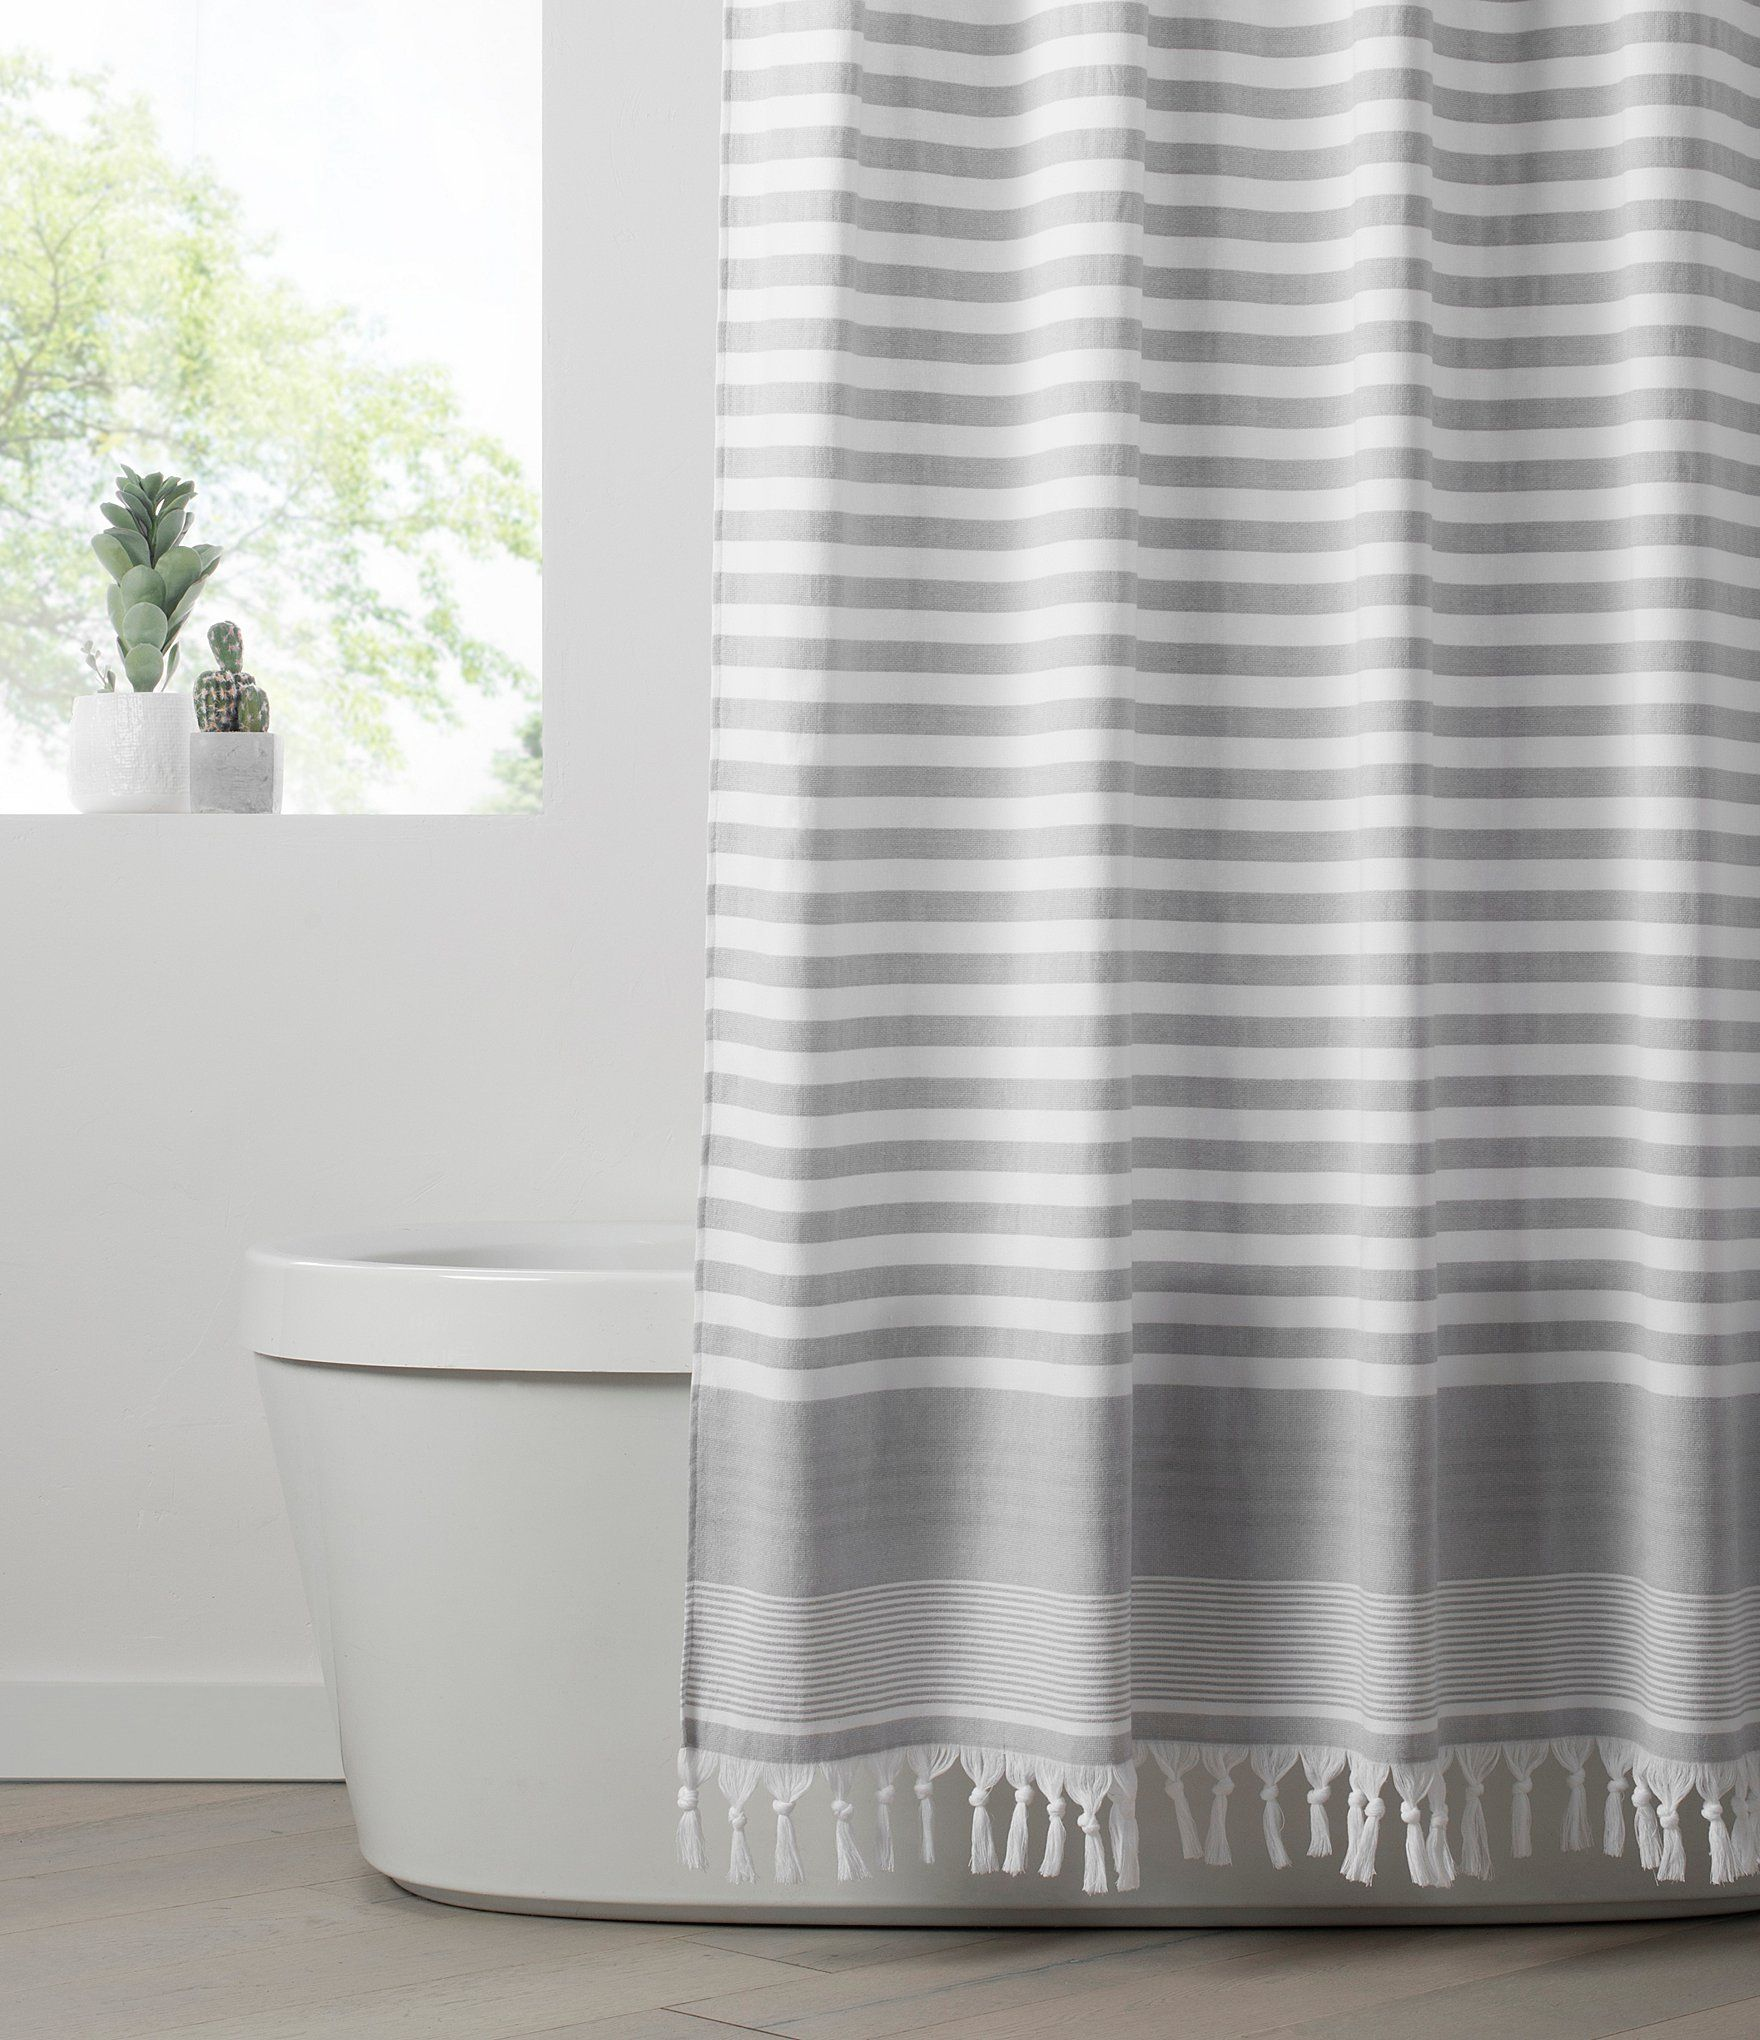 Ugg Minette Horizontal Stripe Shower Curtain N A N A In 2020